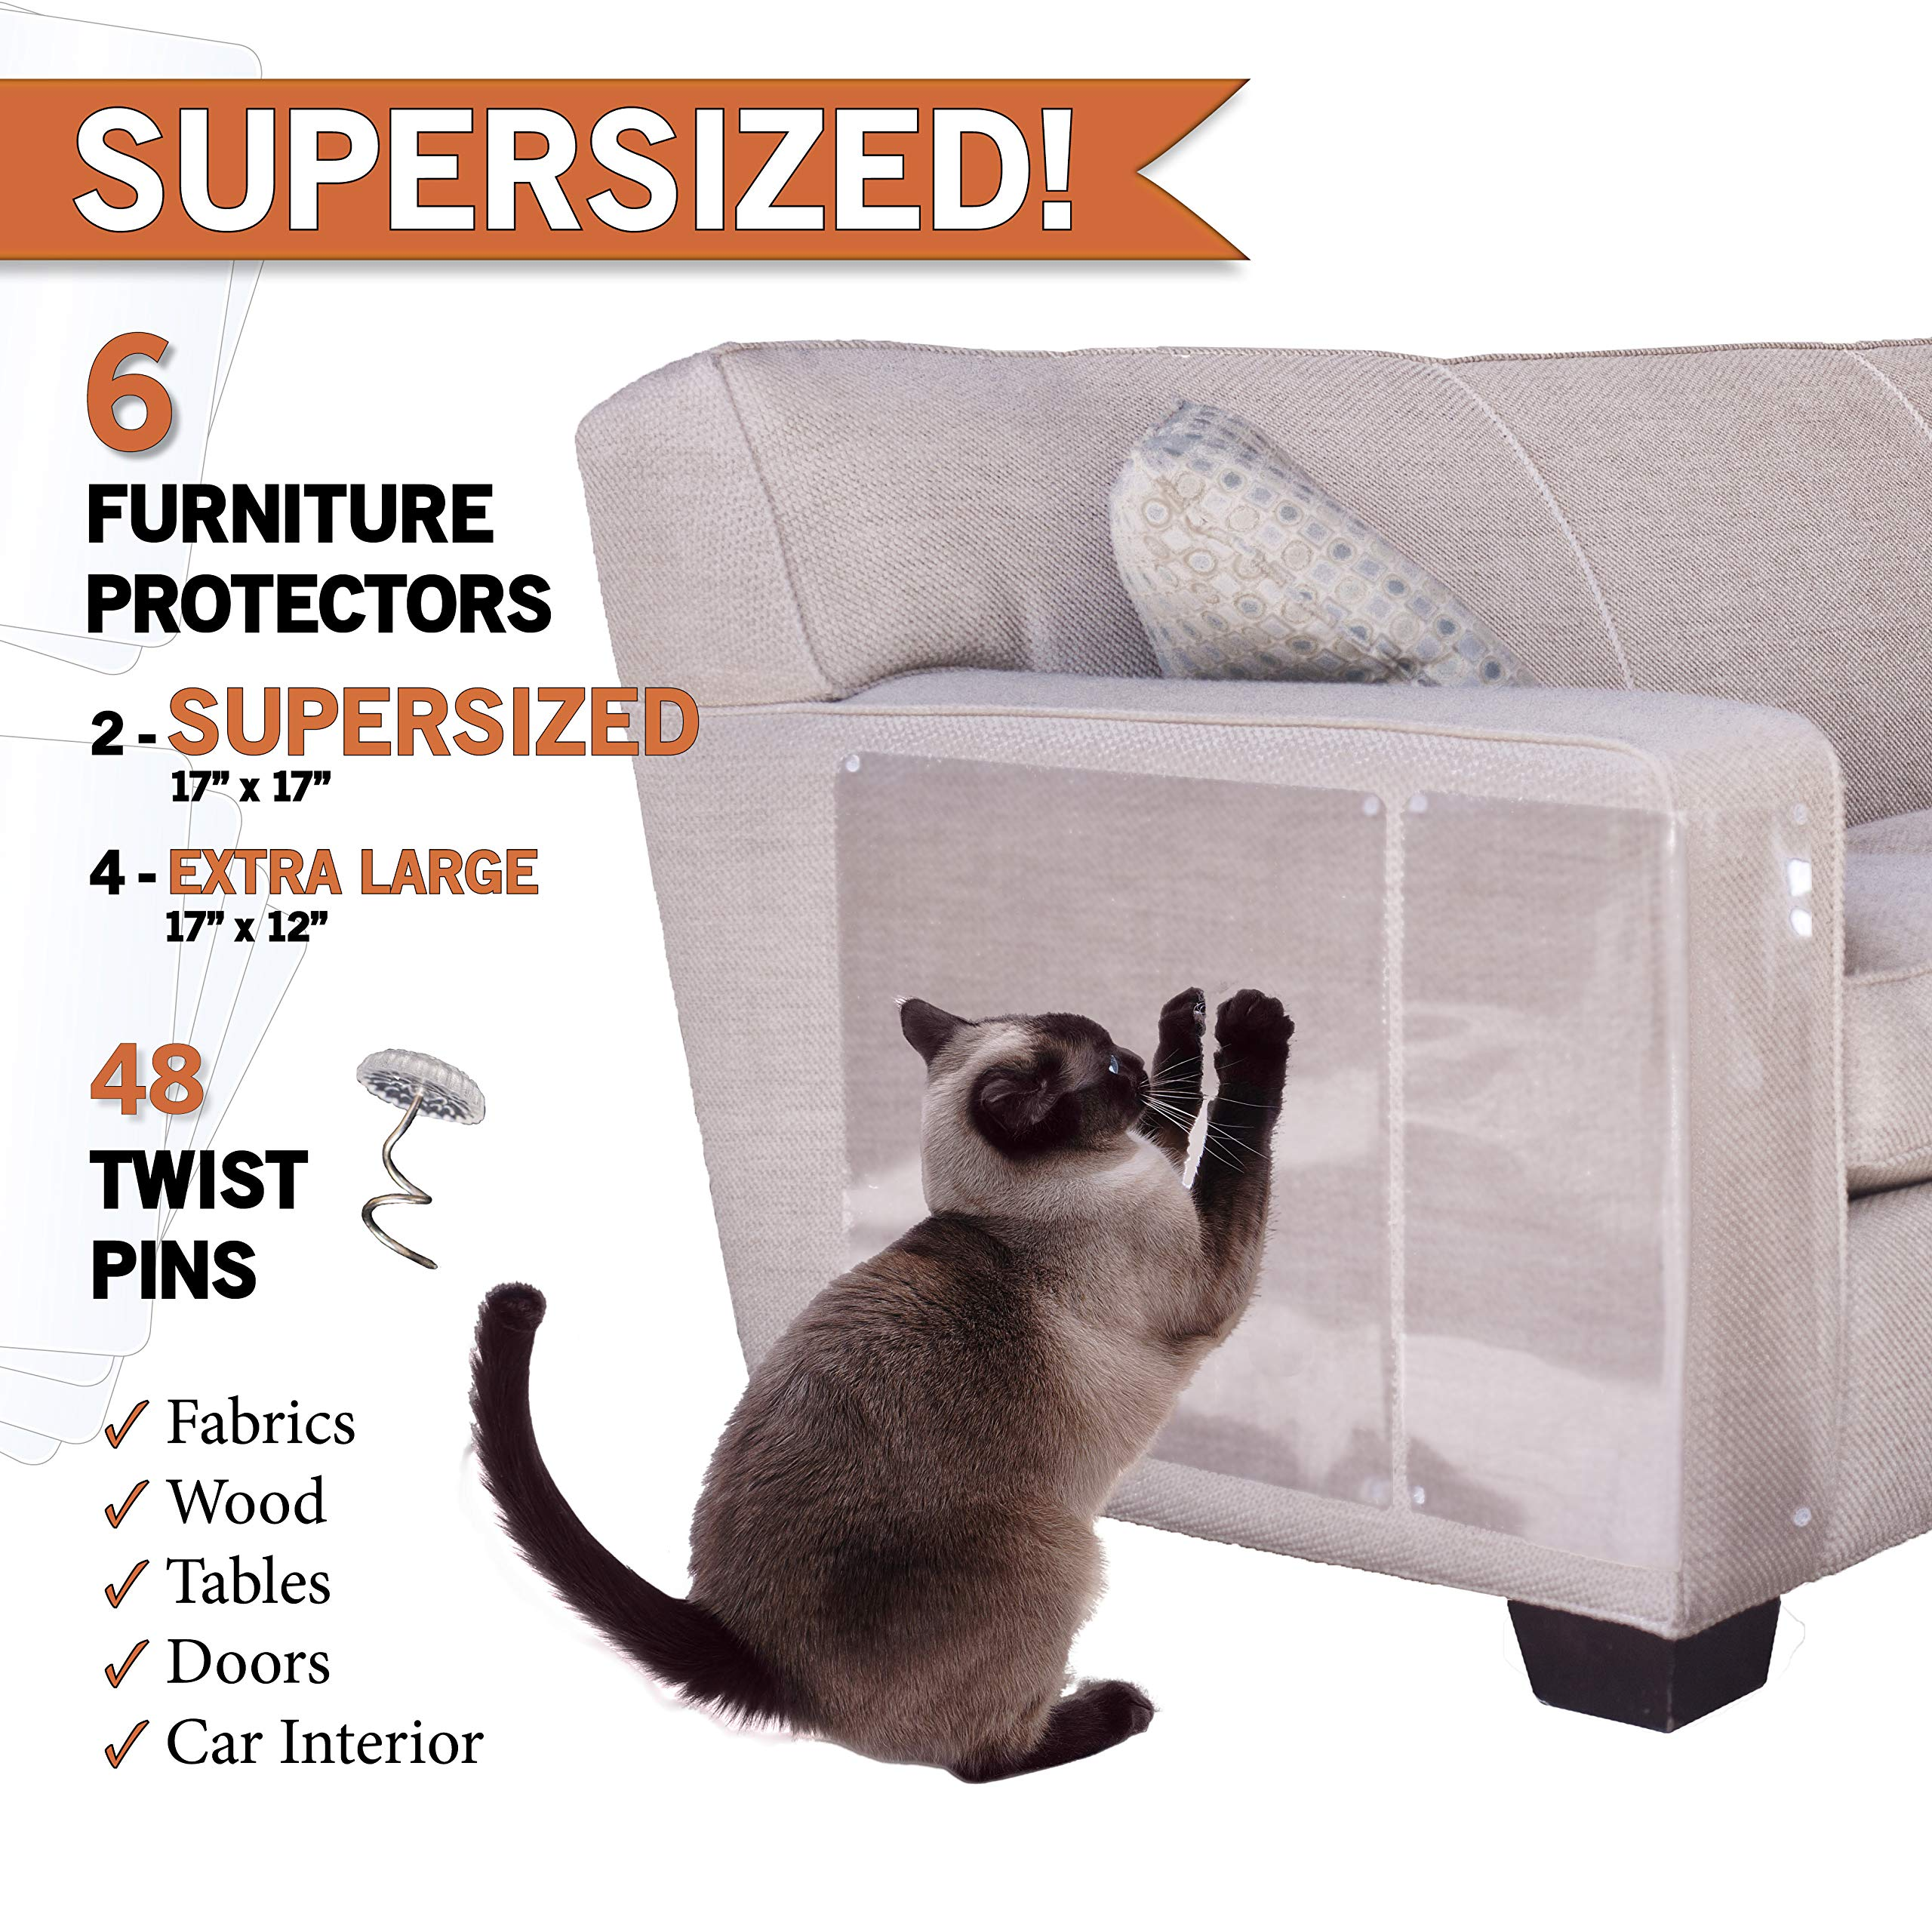 PanzerGlobal Cat Furniture Protector - Supersized Pet Protectors Included - Cut-to-Fit Sofa Scratch Protection - Dog Scratching Guards for Couch, Door, Armchair Corner - Animal Anti-Scratch Shield by Furniture Protector by Panzerglobal